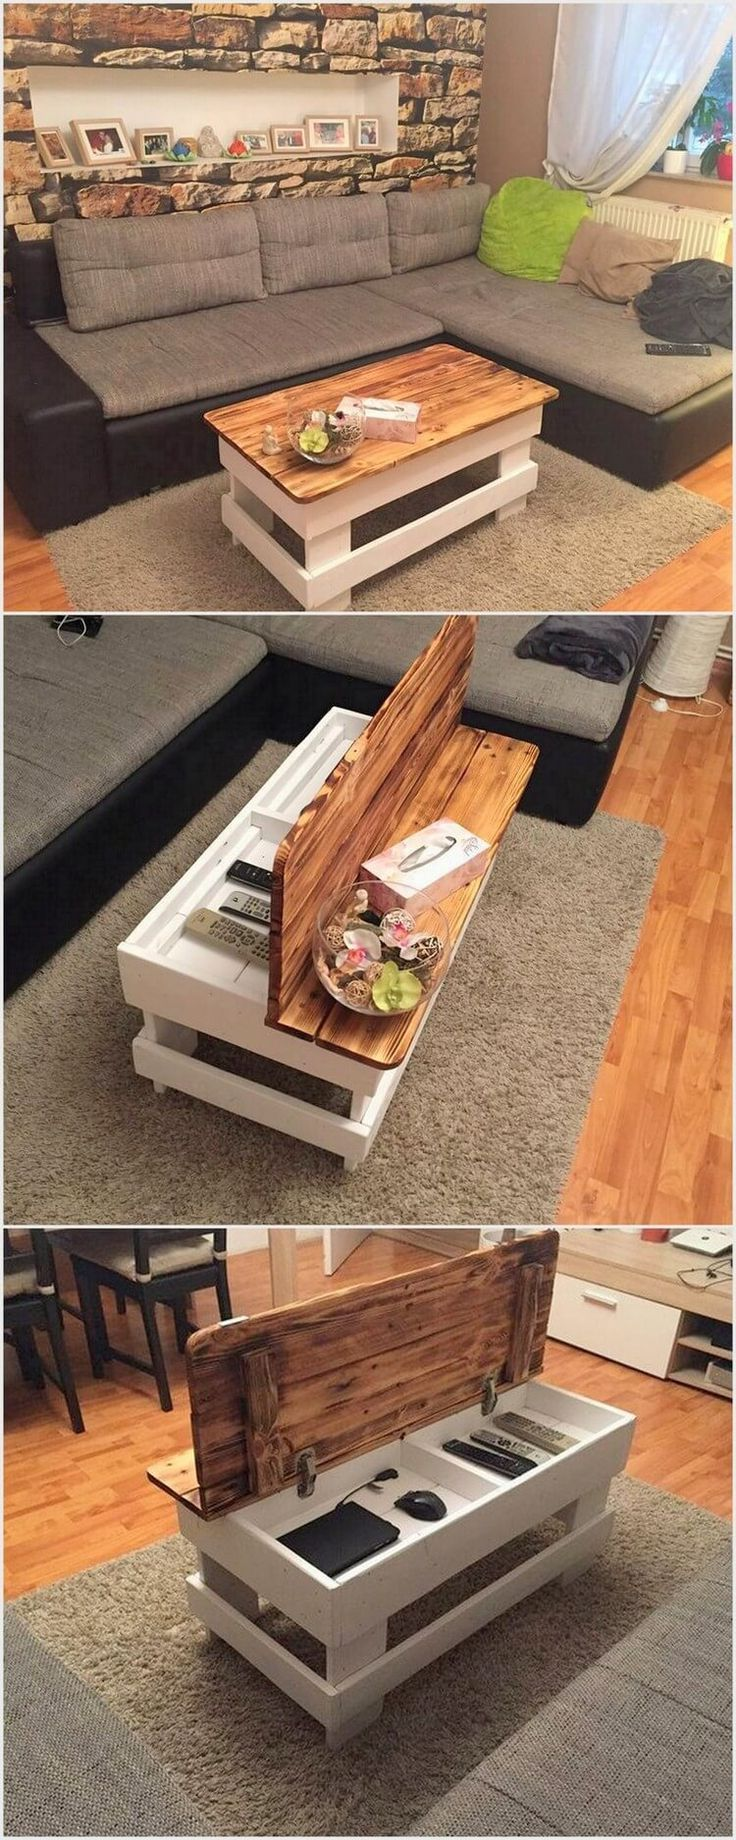 Adding The House With The Stylish Wood Pallet Table Along Feature Of Storage In It Is The Utmost Demand Of The Wood Pallet Tables Diy Pallet Furniture Home Diy [ 1840 x 736 Pixel ]